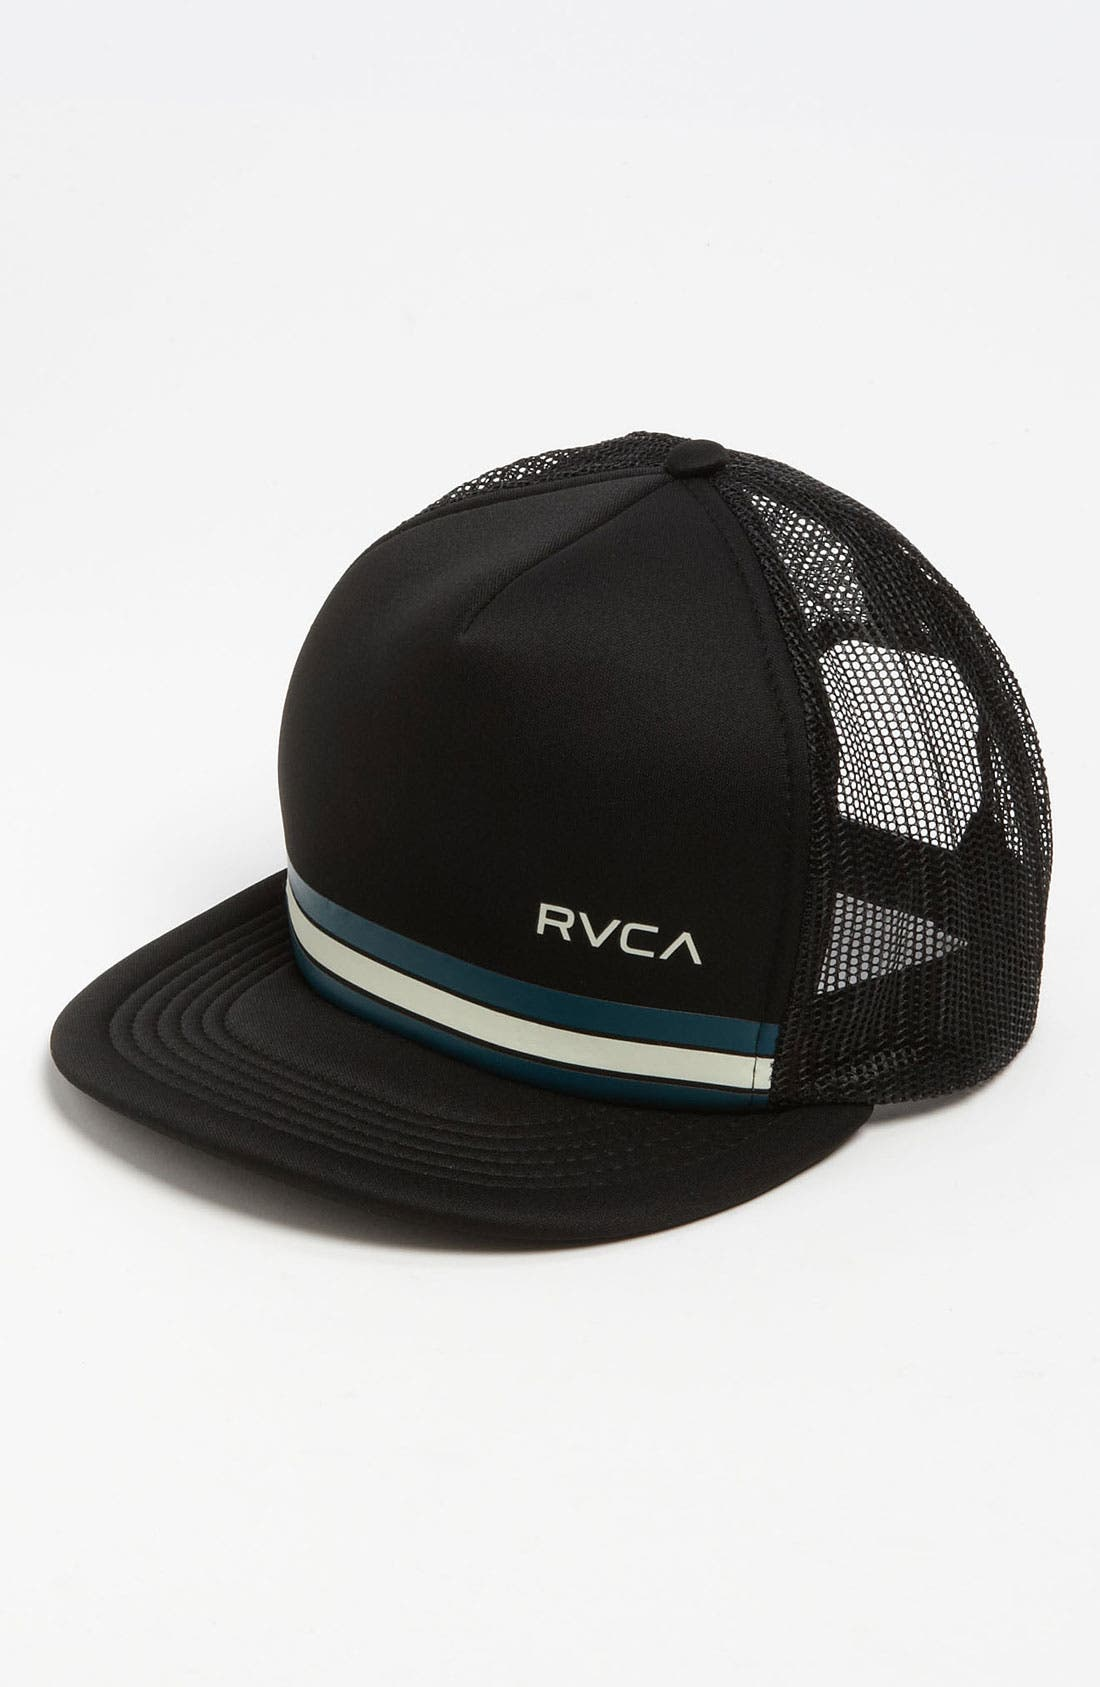 Alternate Image 1 Selected - RVCA 'Barlow' Trucker Hat